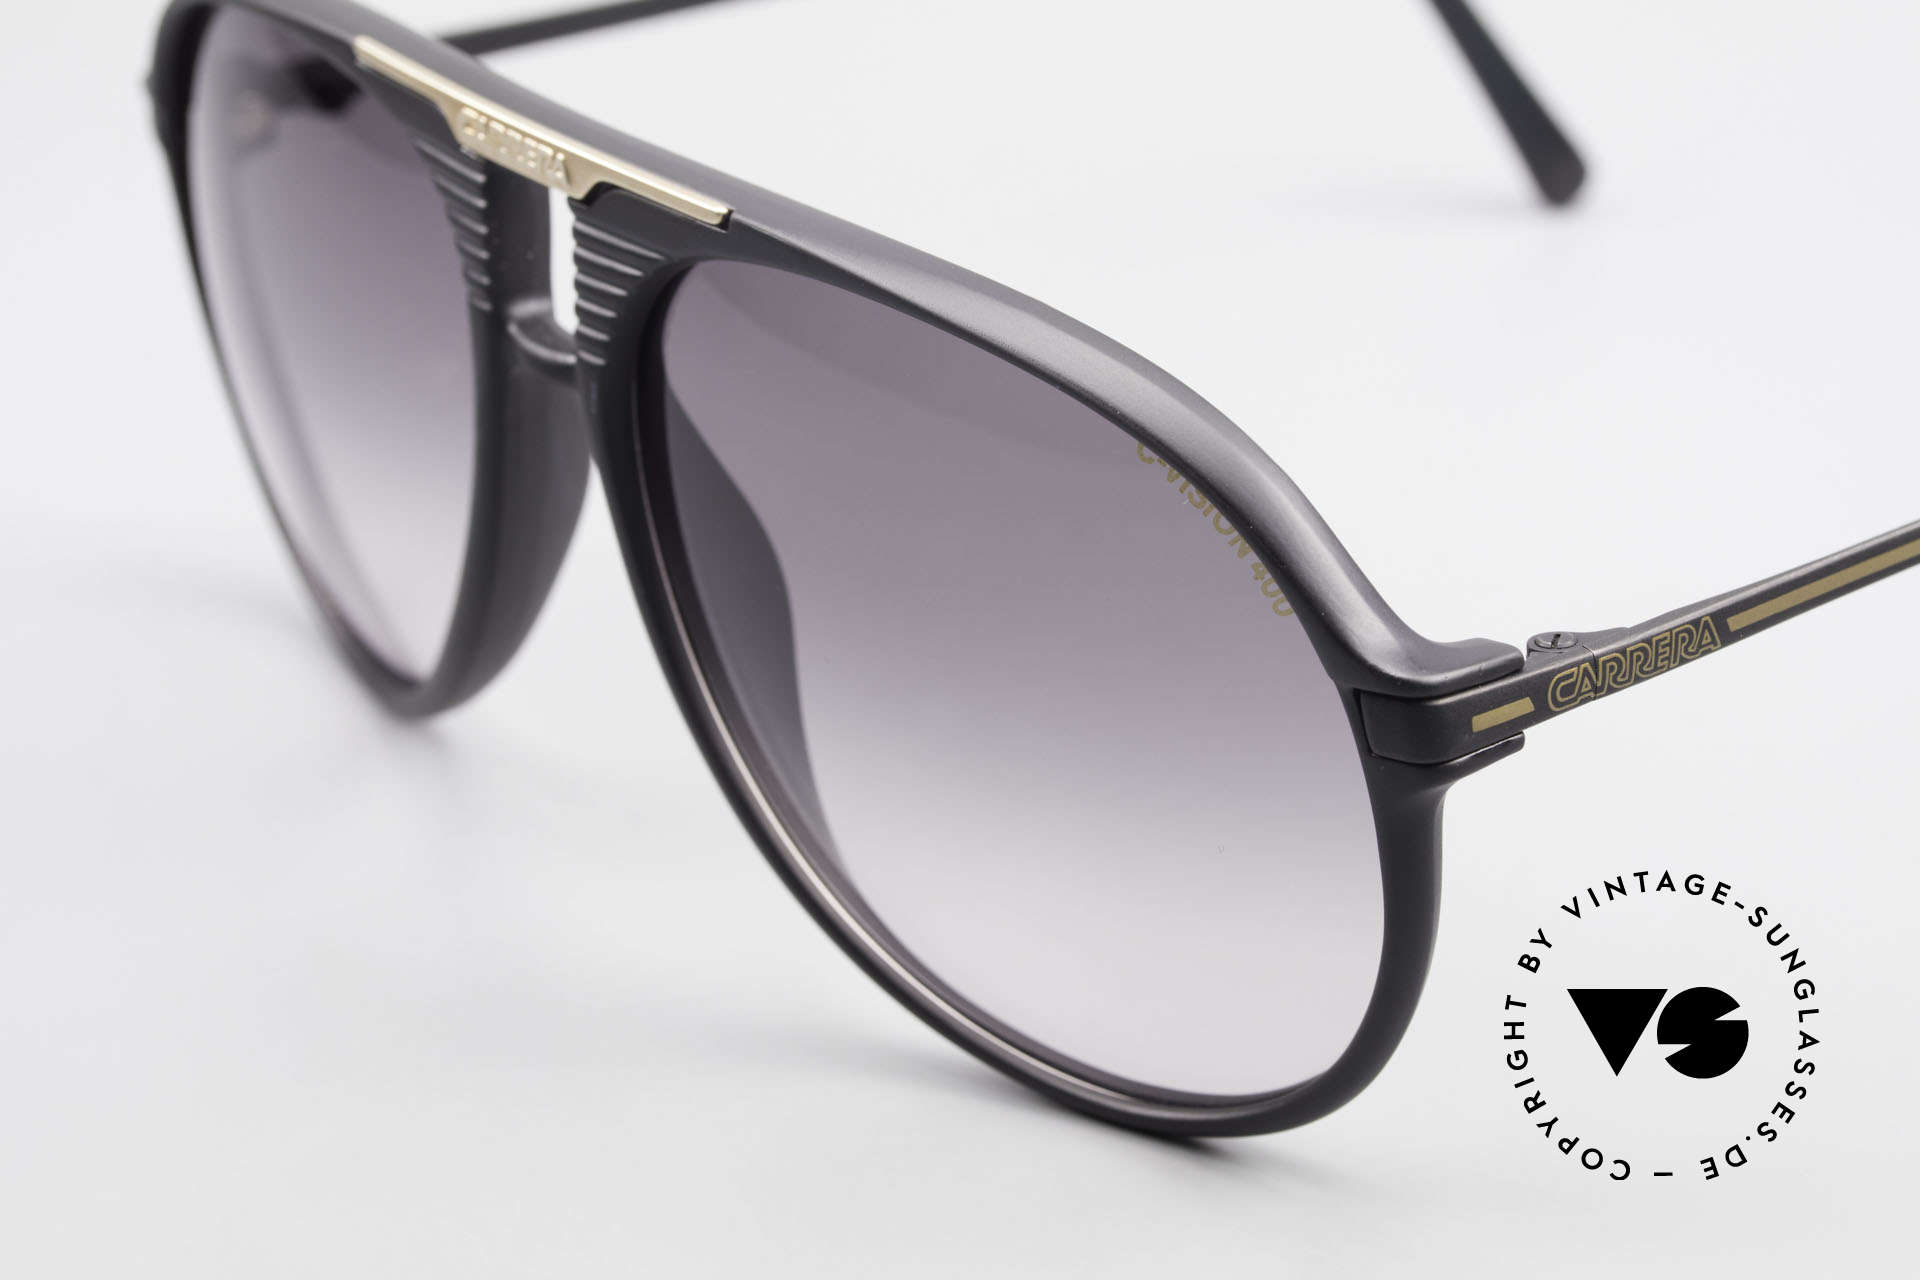 Carrera 5595 80's Shades Extra Sun Lenses, 2 sets of lenses: 1x gray-gradient & 1x mirrored, Made for Men